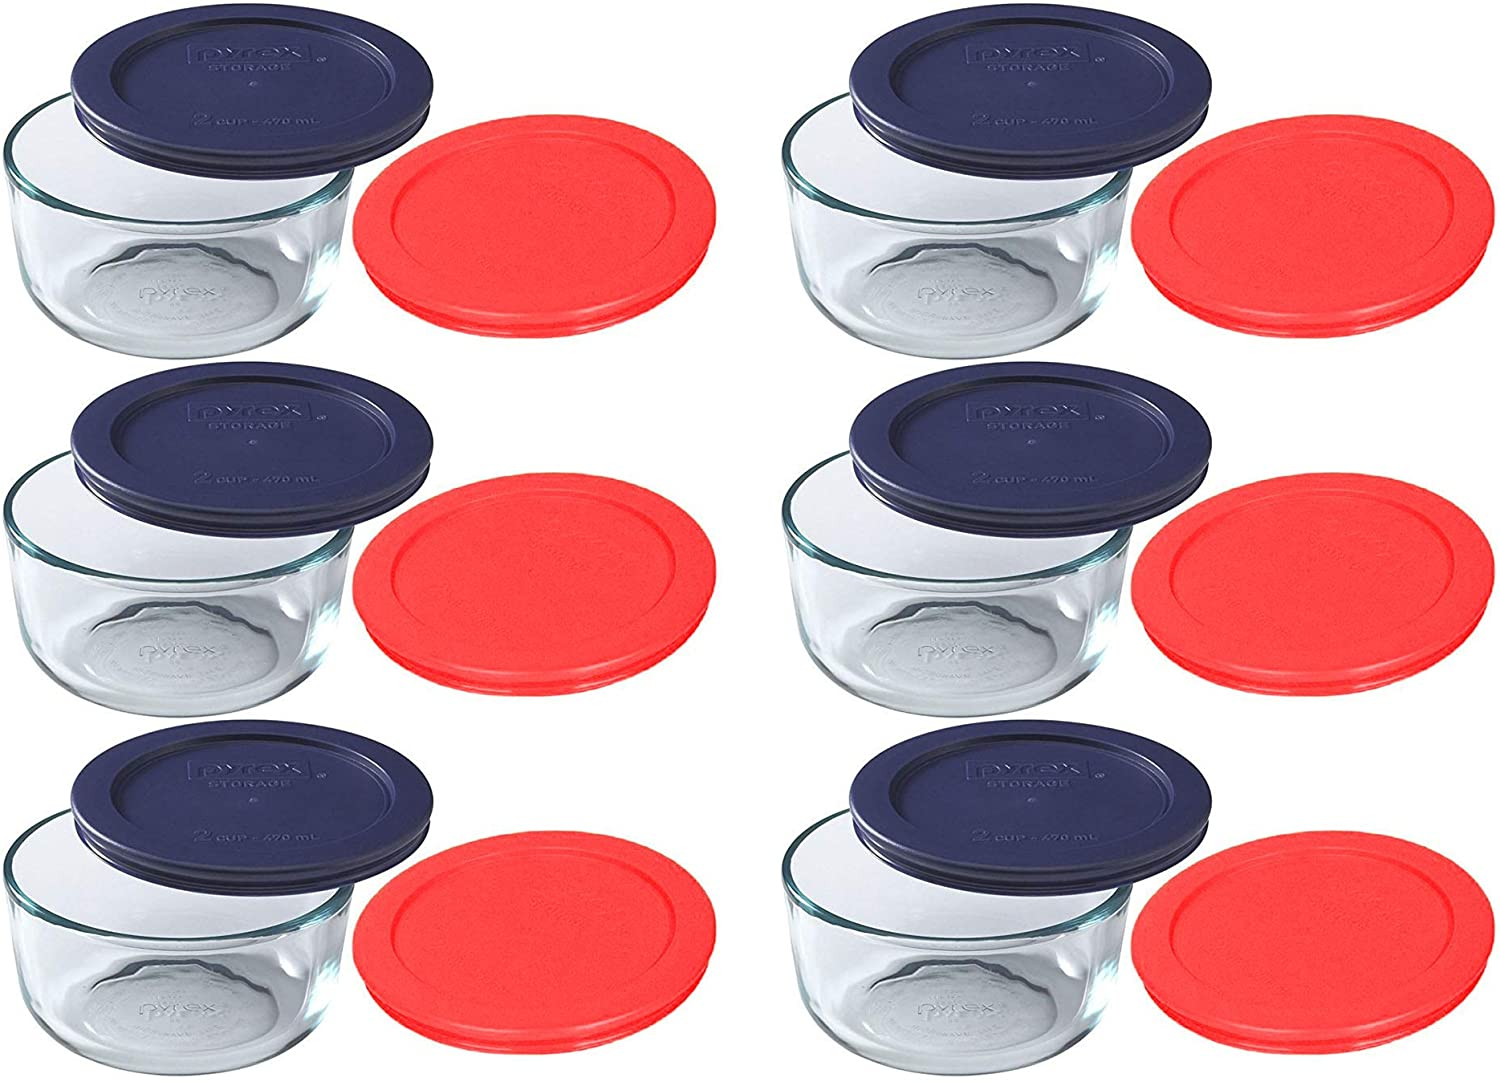 Pyrex Storage New popularity 2 Cup Round Indianapolis Mall Dish Red Clear Blue with Lids Pack